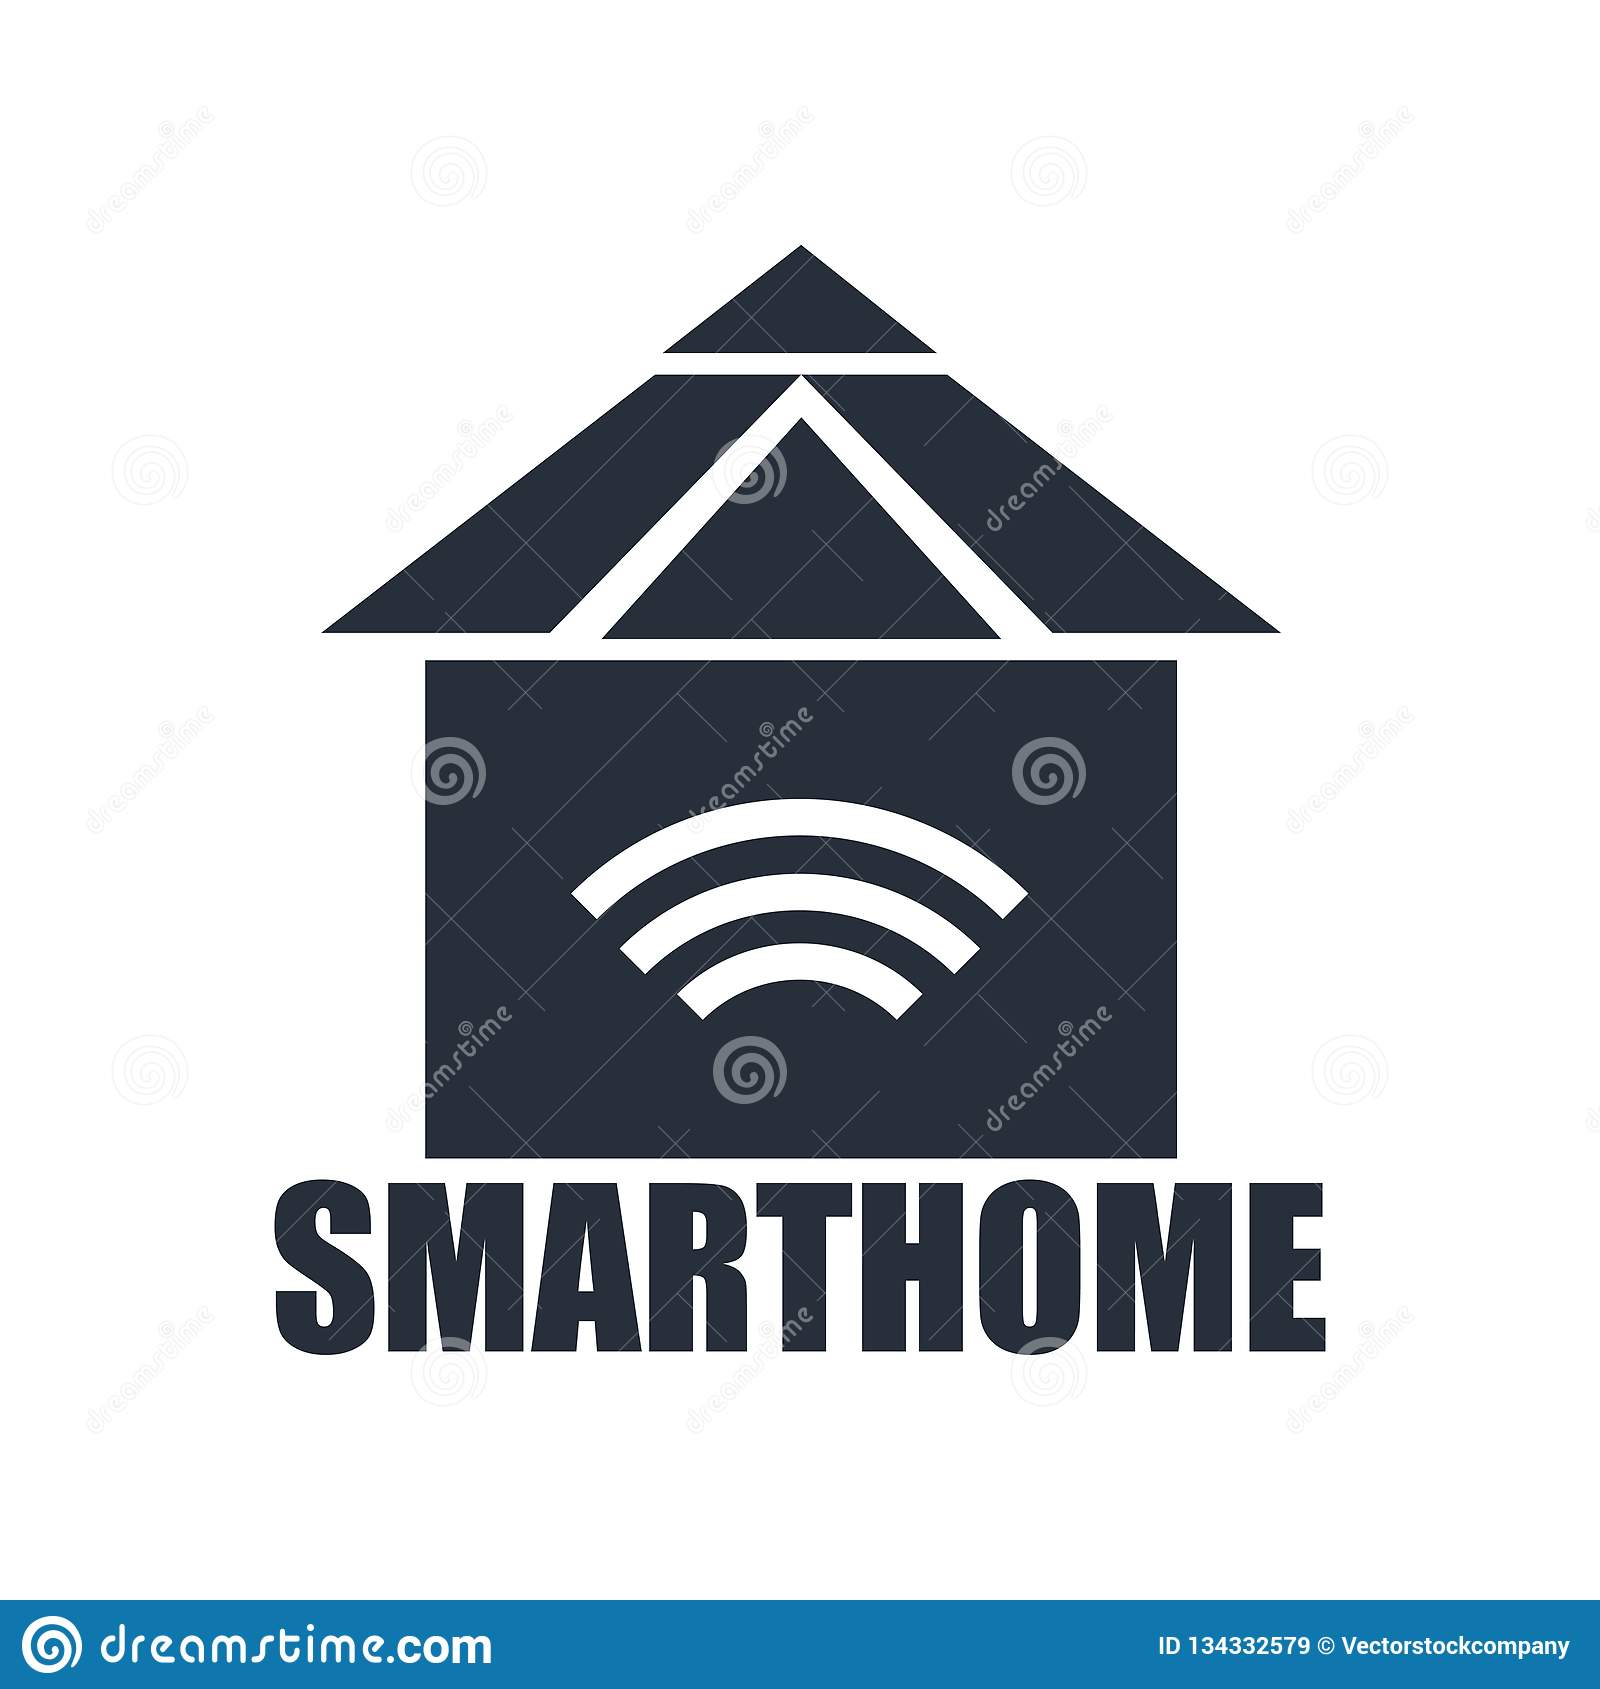 Smarthome icon vector sign and symbol isolated on white background, Smarthome logo concept